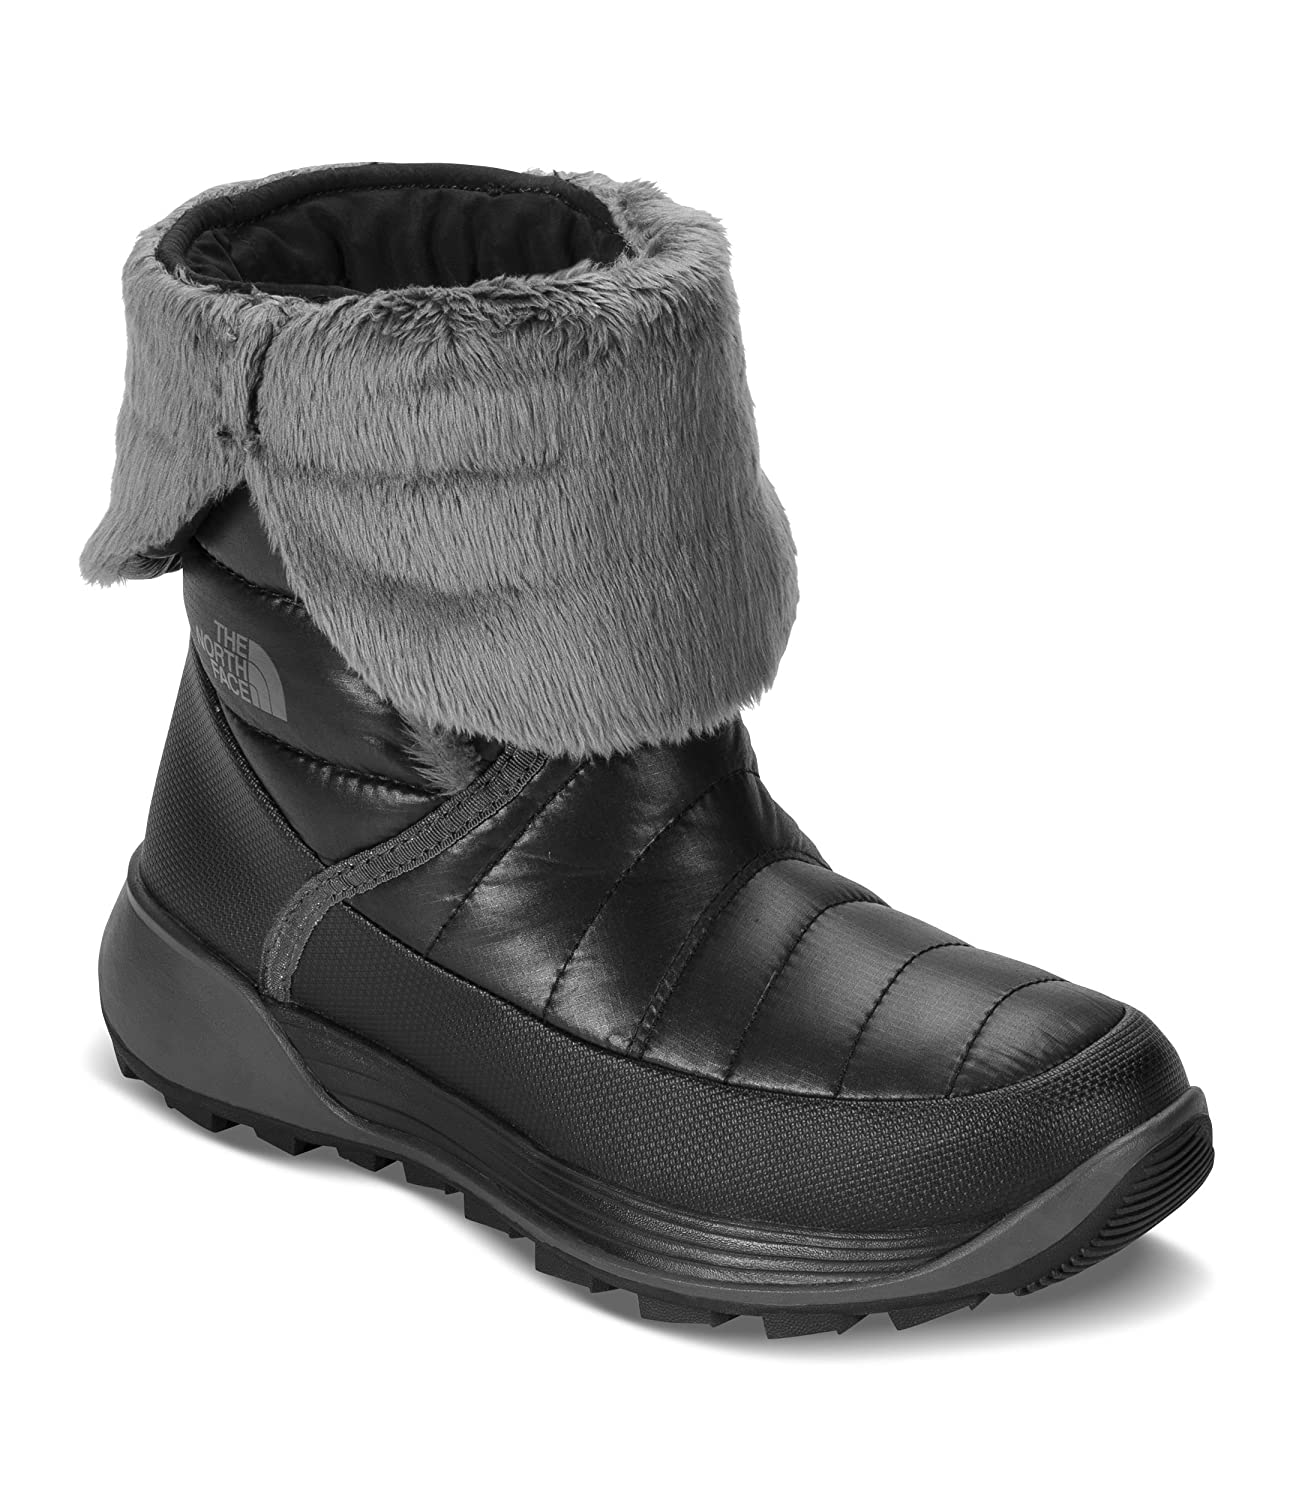 258527914 The North Face Youth Amore II Insulated Boot